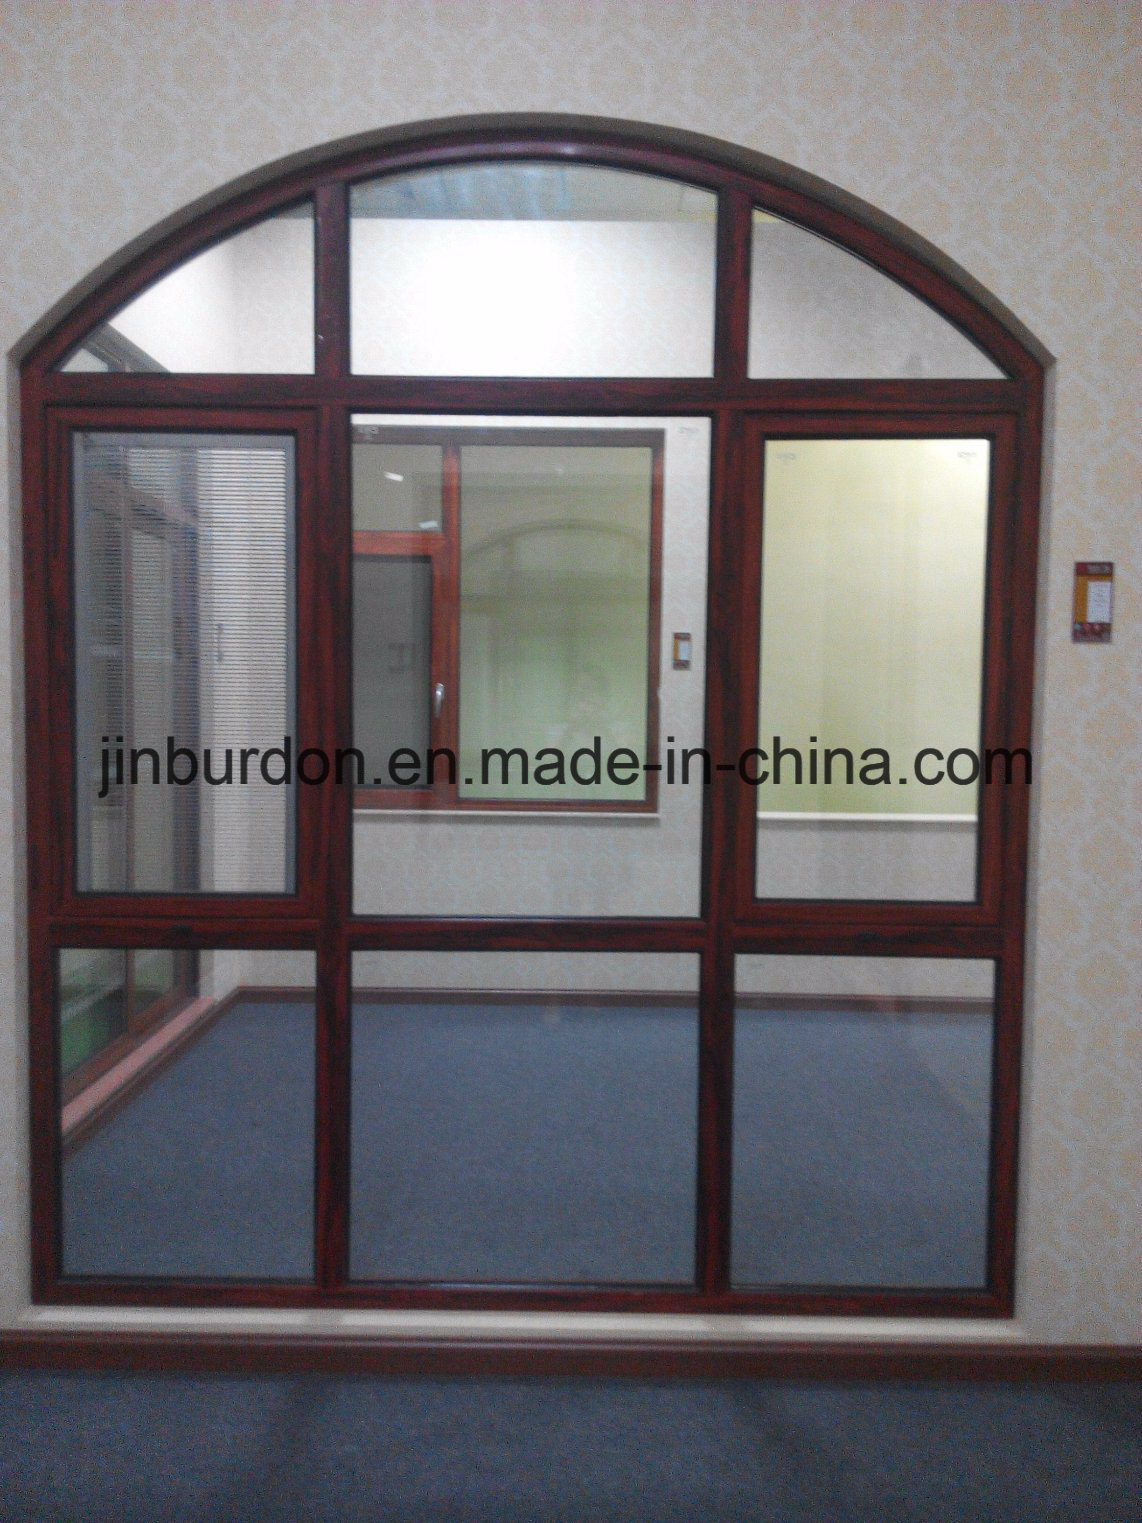 Aluminium curved window with double glazing for customized house